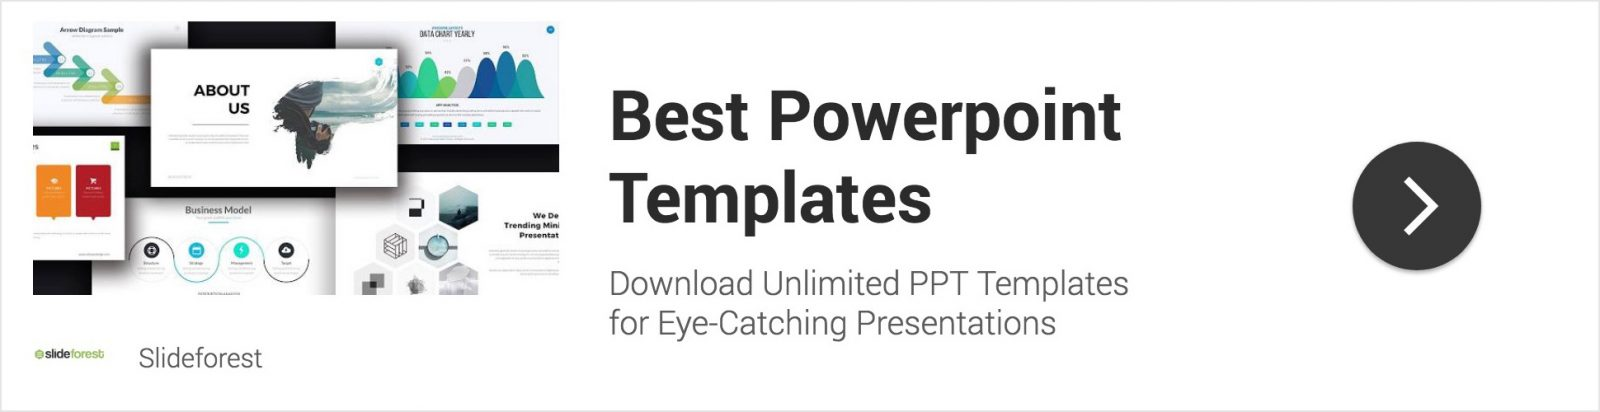 25 free business powerpoint templates for presentations business powerpoint templates wajeb Image collections